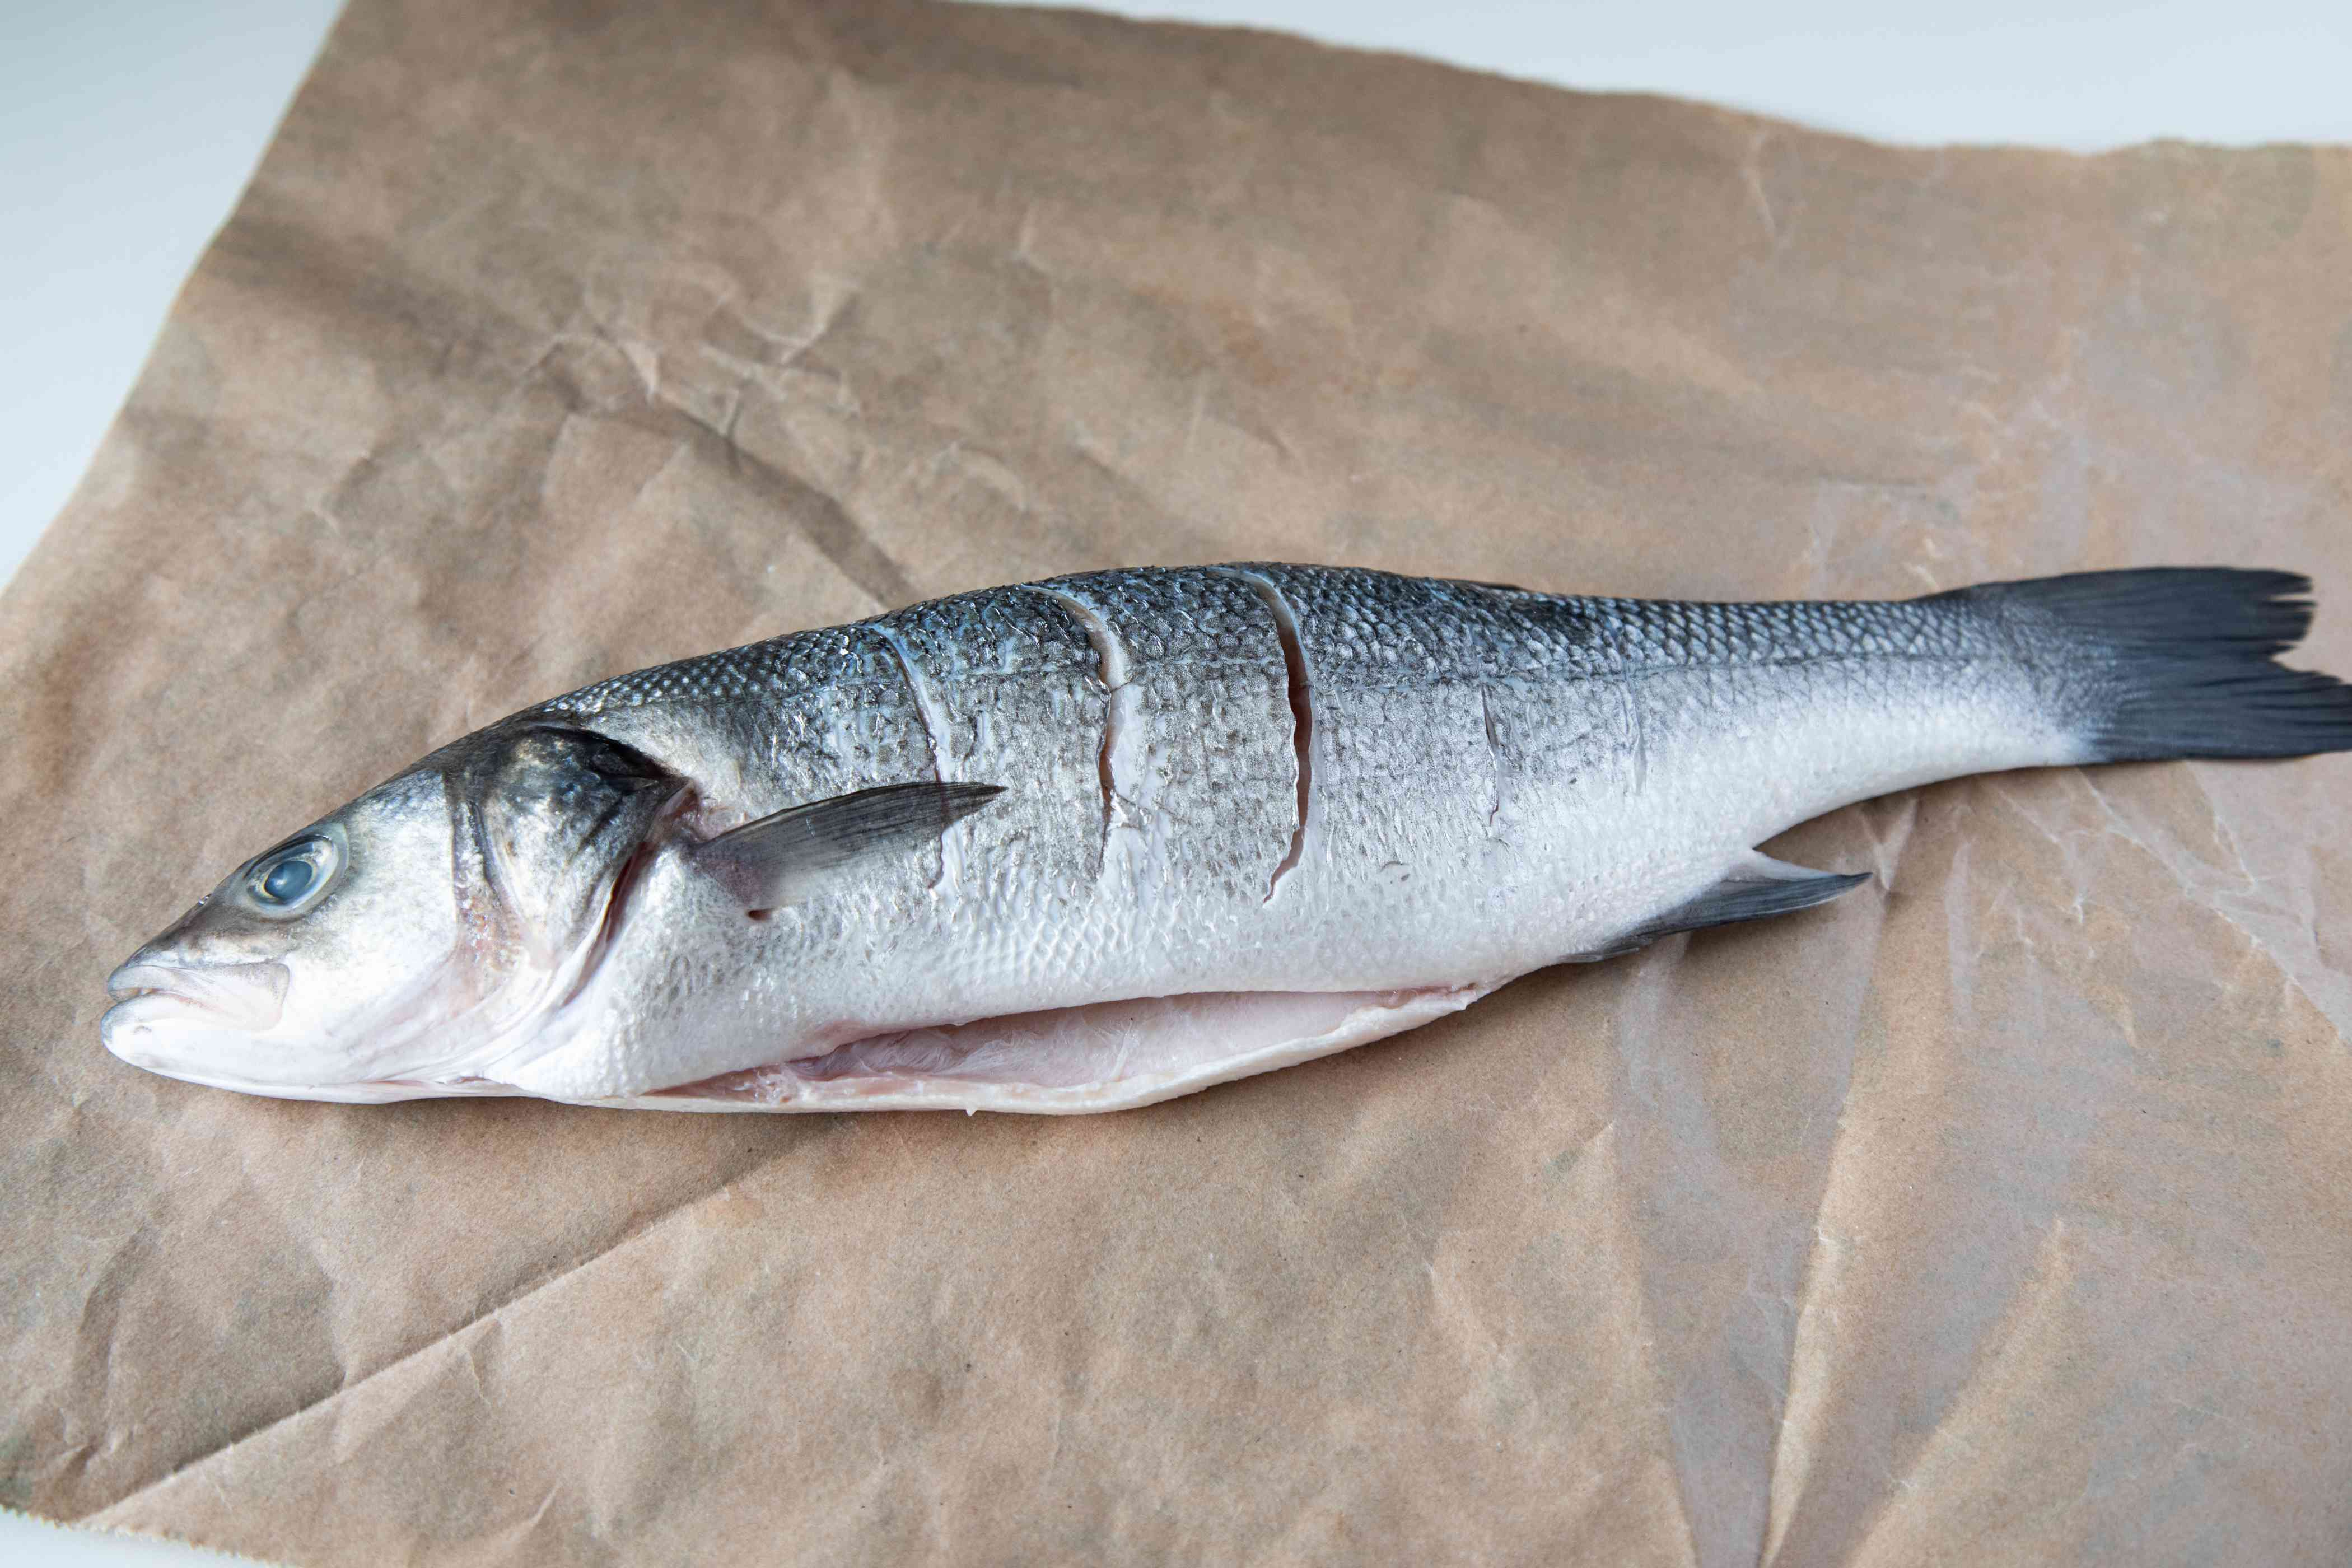 A whole branzini fish with slashes down the side of it.